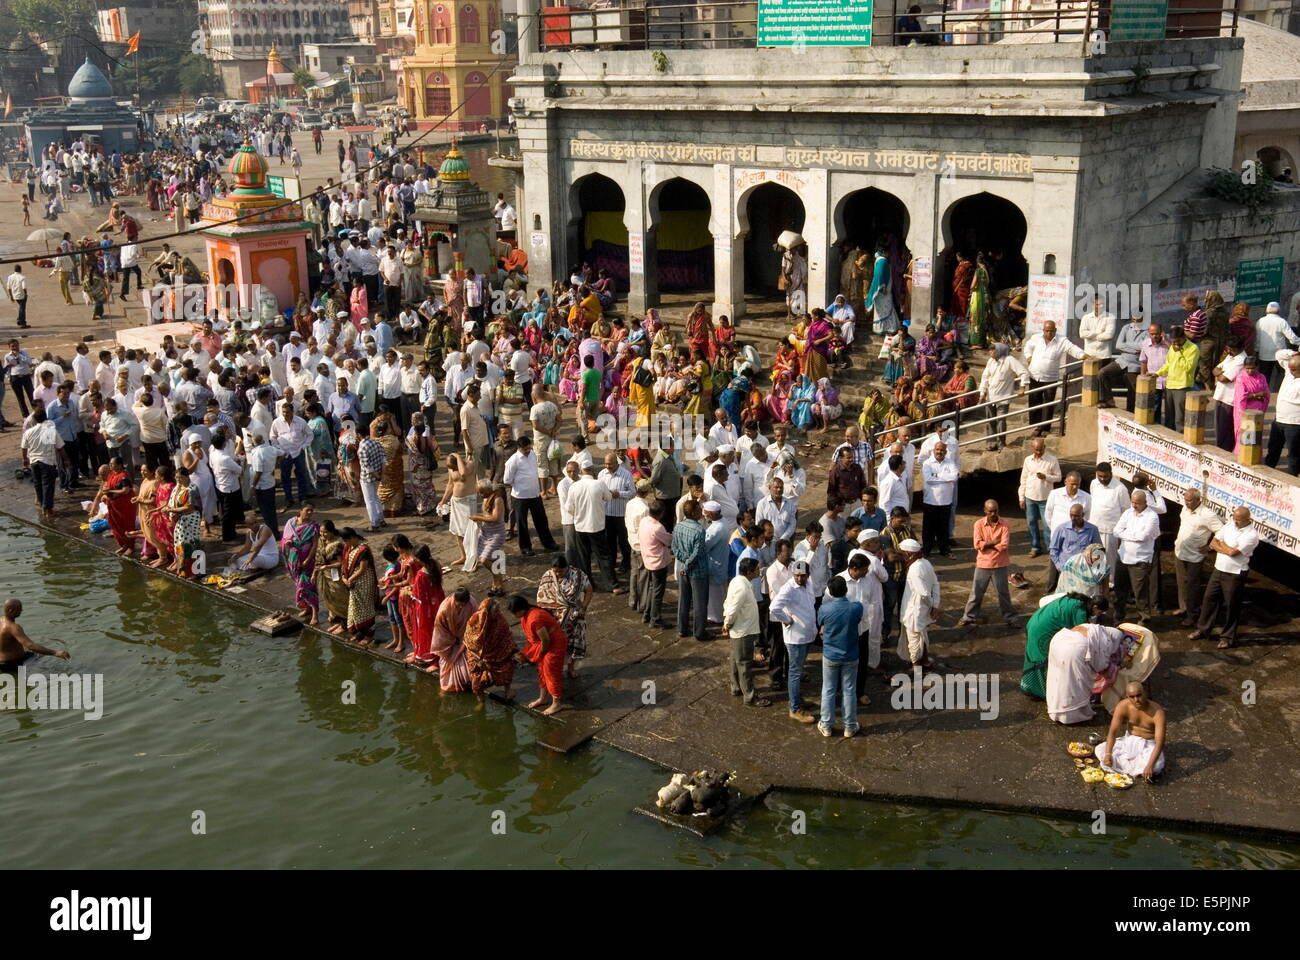 Worshippers at the Ramkund tank on the ghats along the holy River Godavari, Nasik (Nashik), Maharashtra, India, - Stock Image